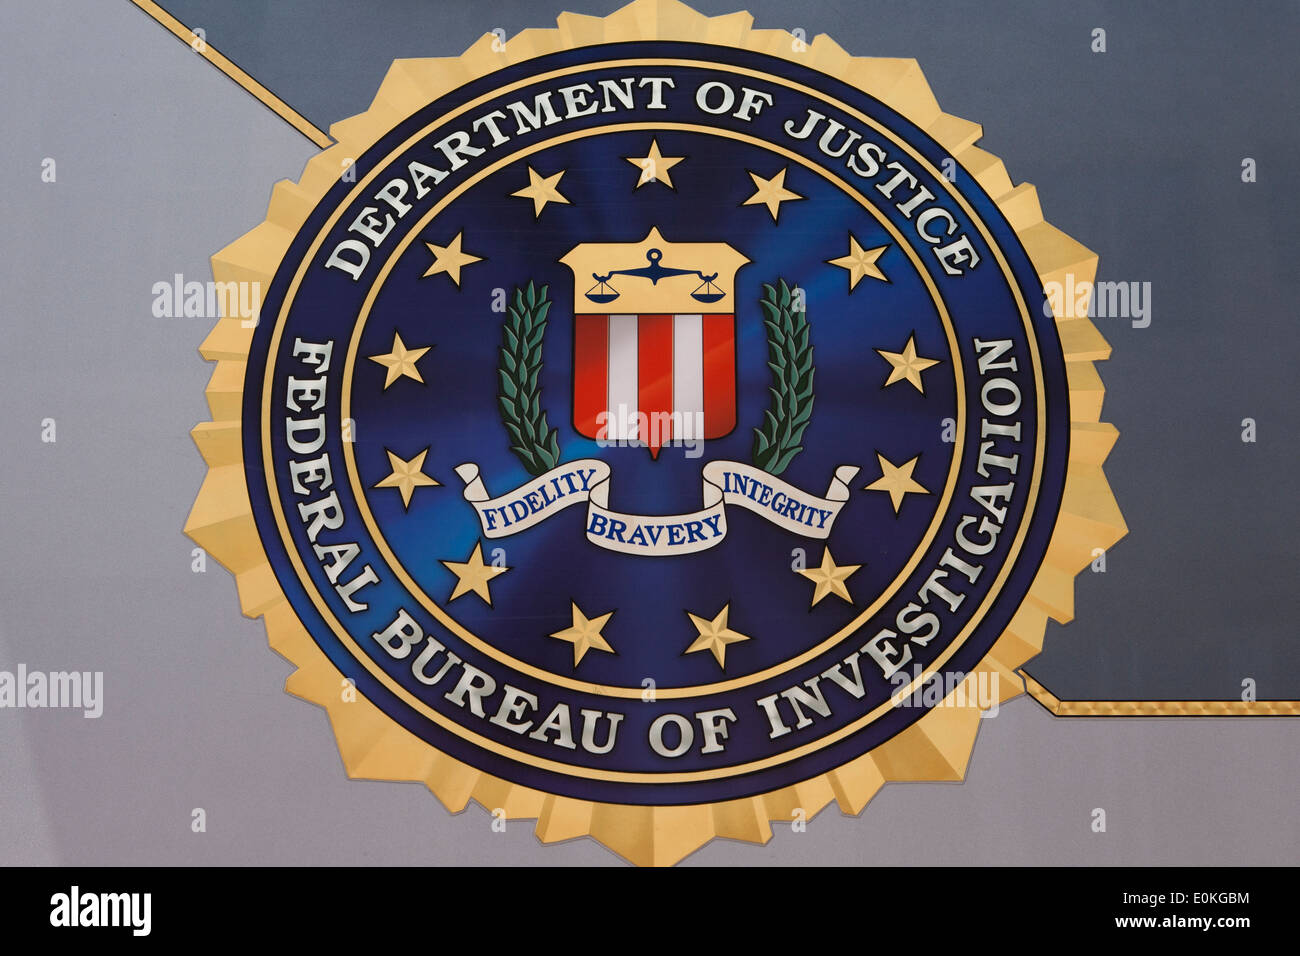 fbi seal logo stock photos fbi seal logo stock images alamy